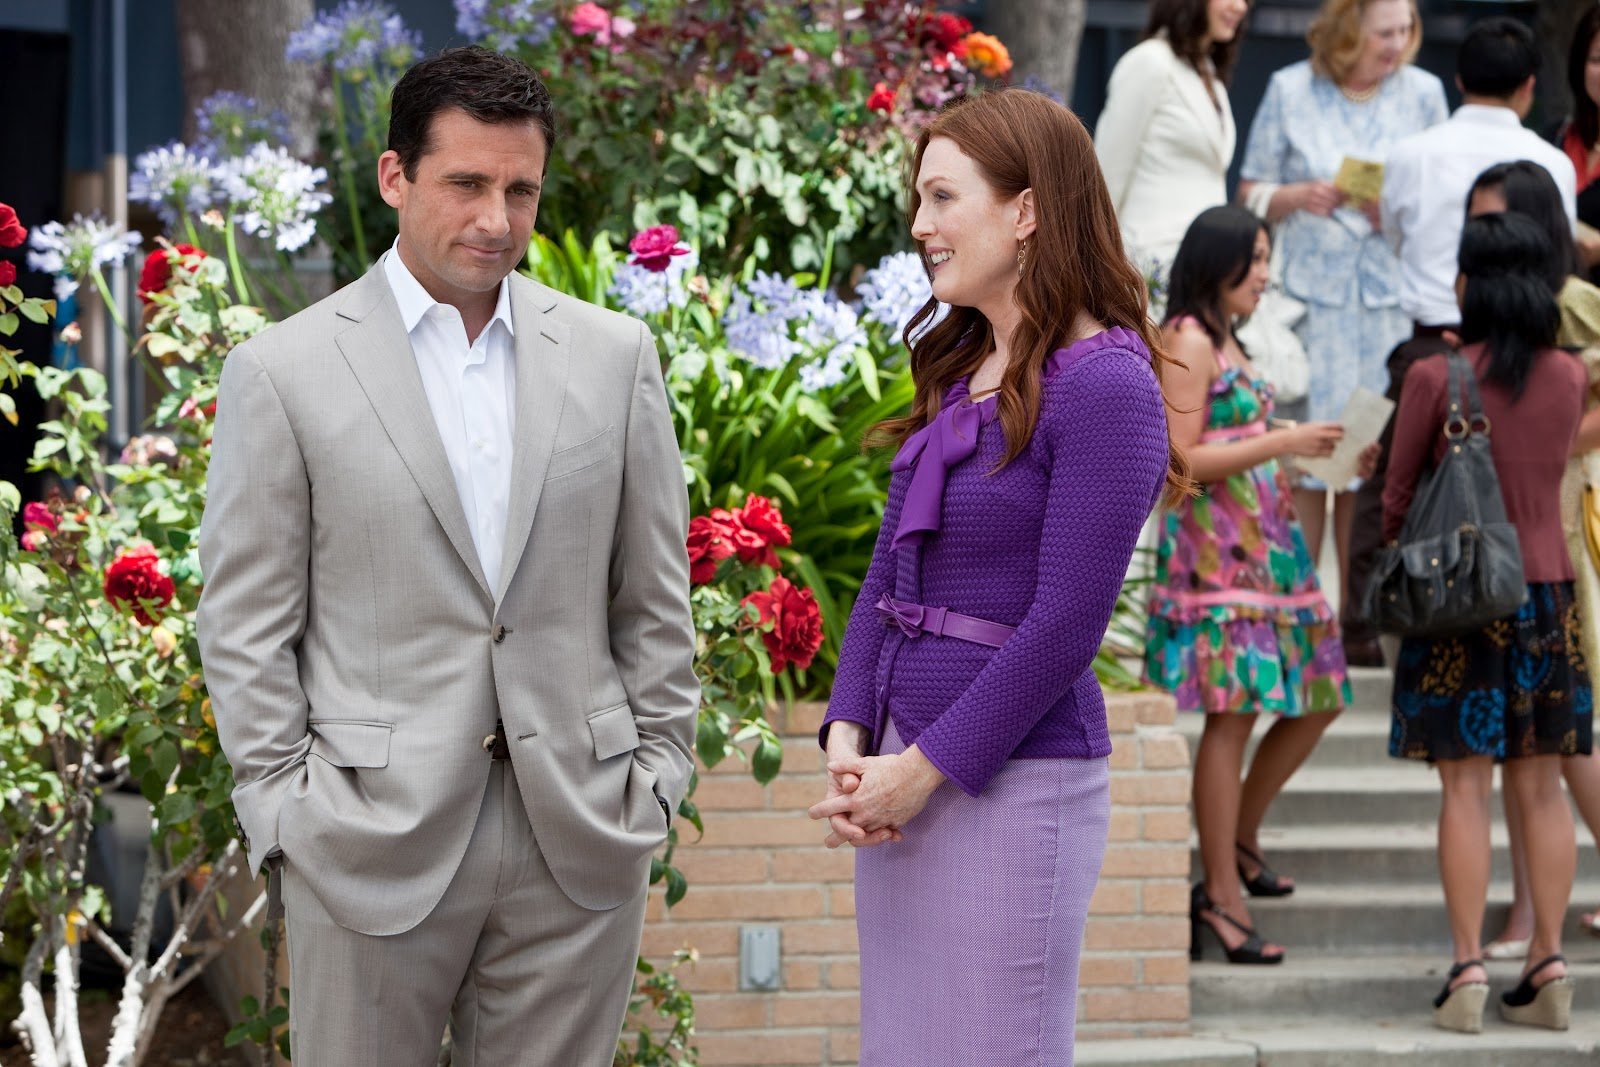 http://4.bp.blogspot.com/-A9f-c17KB3I/T9l3mhyC5lI/AAAAAAAABqI/Ee-kQPCu1h8/s1600/crazy-stupid-love-movie-image-steve-carell-julianne-moore-06.jpg